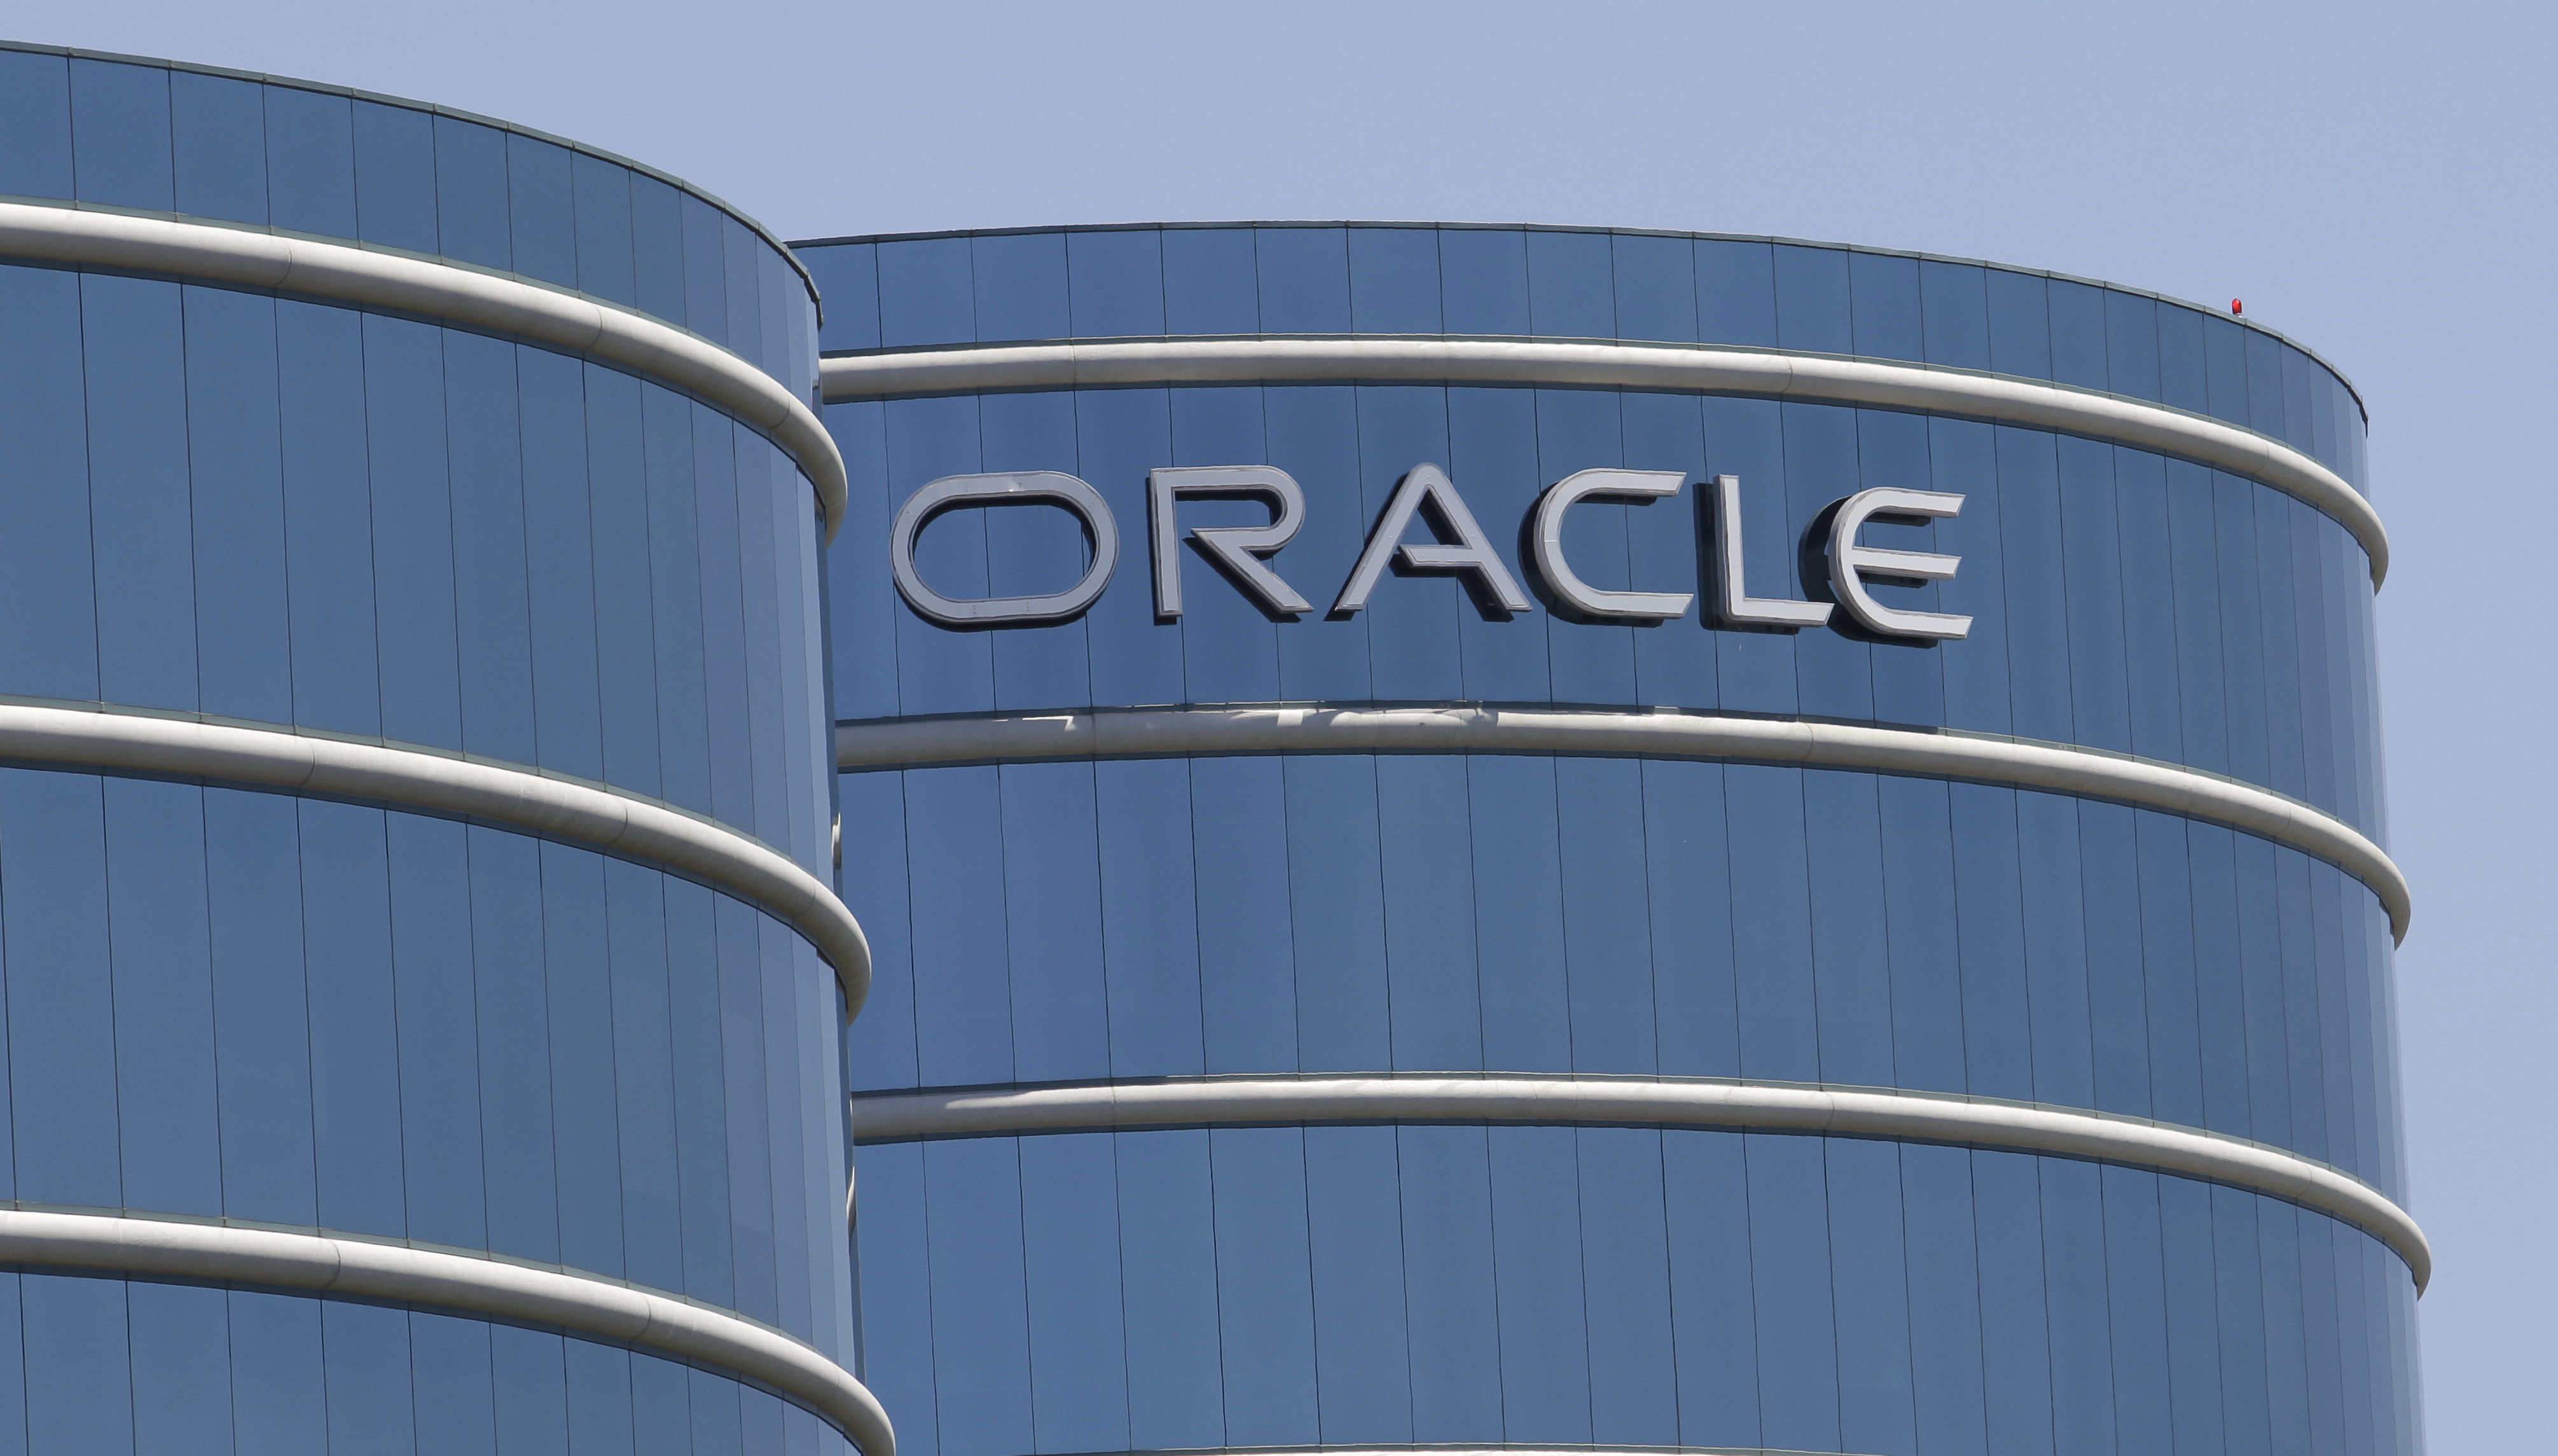 Oracle headquarters in Redwood City, Calif. (File)